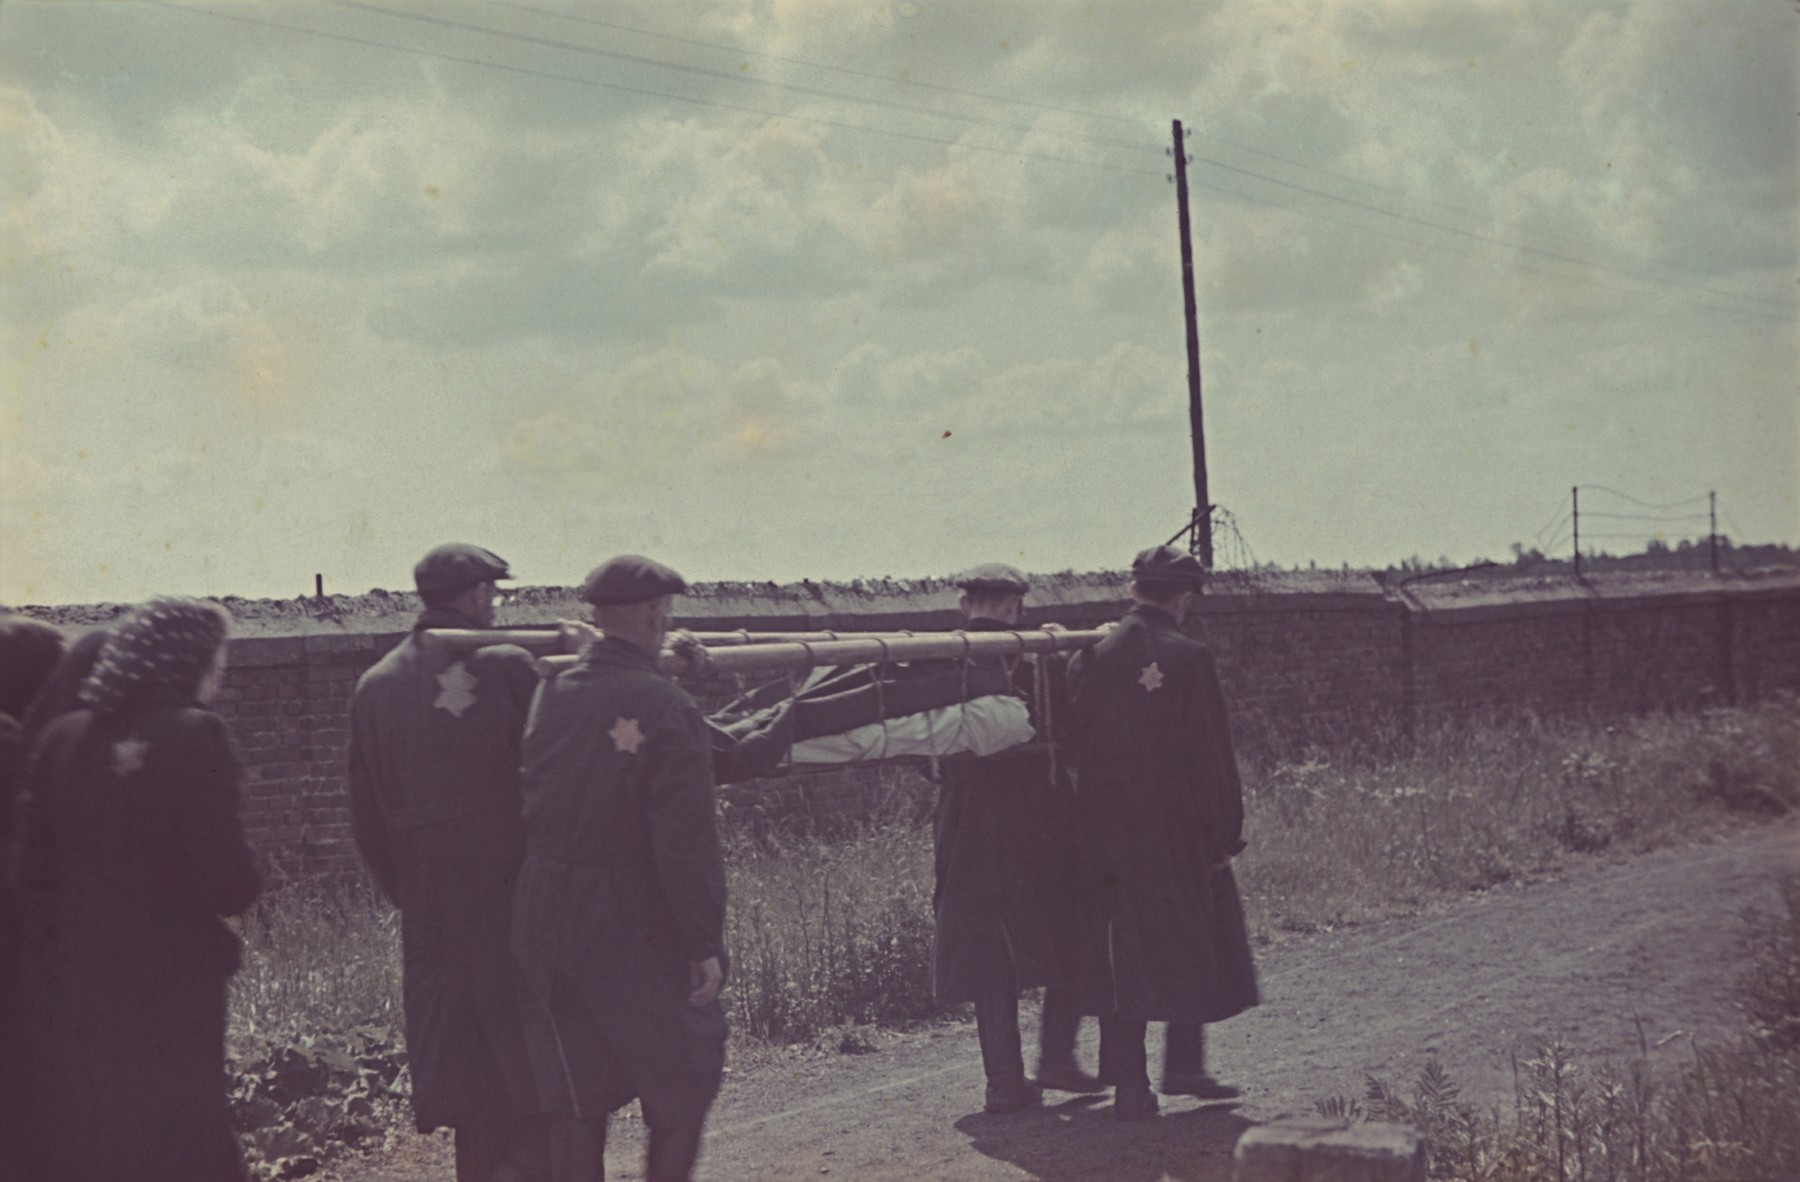 Pall bearers carry a stretcher with a corpse on their shoulders to the Jewish cemetery in Lodz.